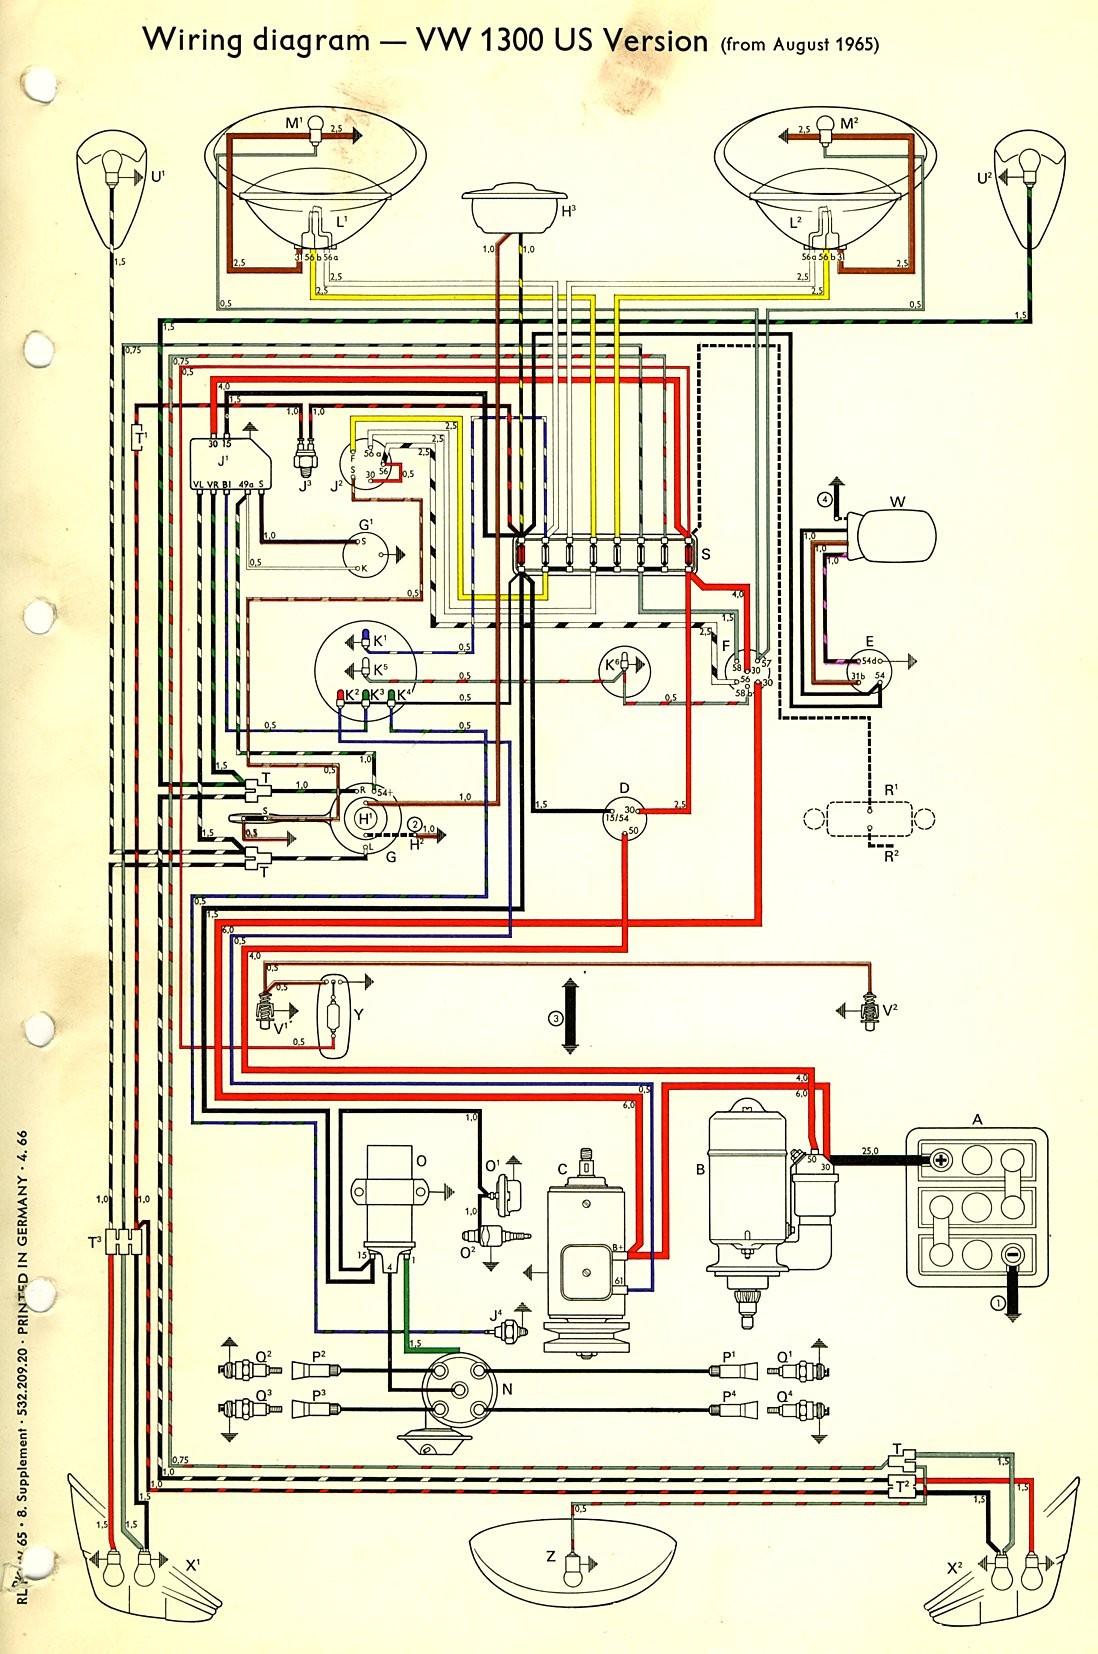 1965 Vw Bus Wiring Diagram Get Free Image About Wiring Diagram